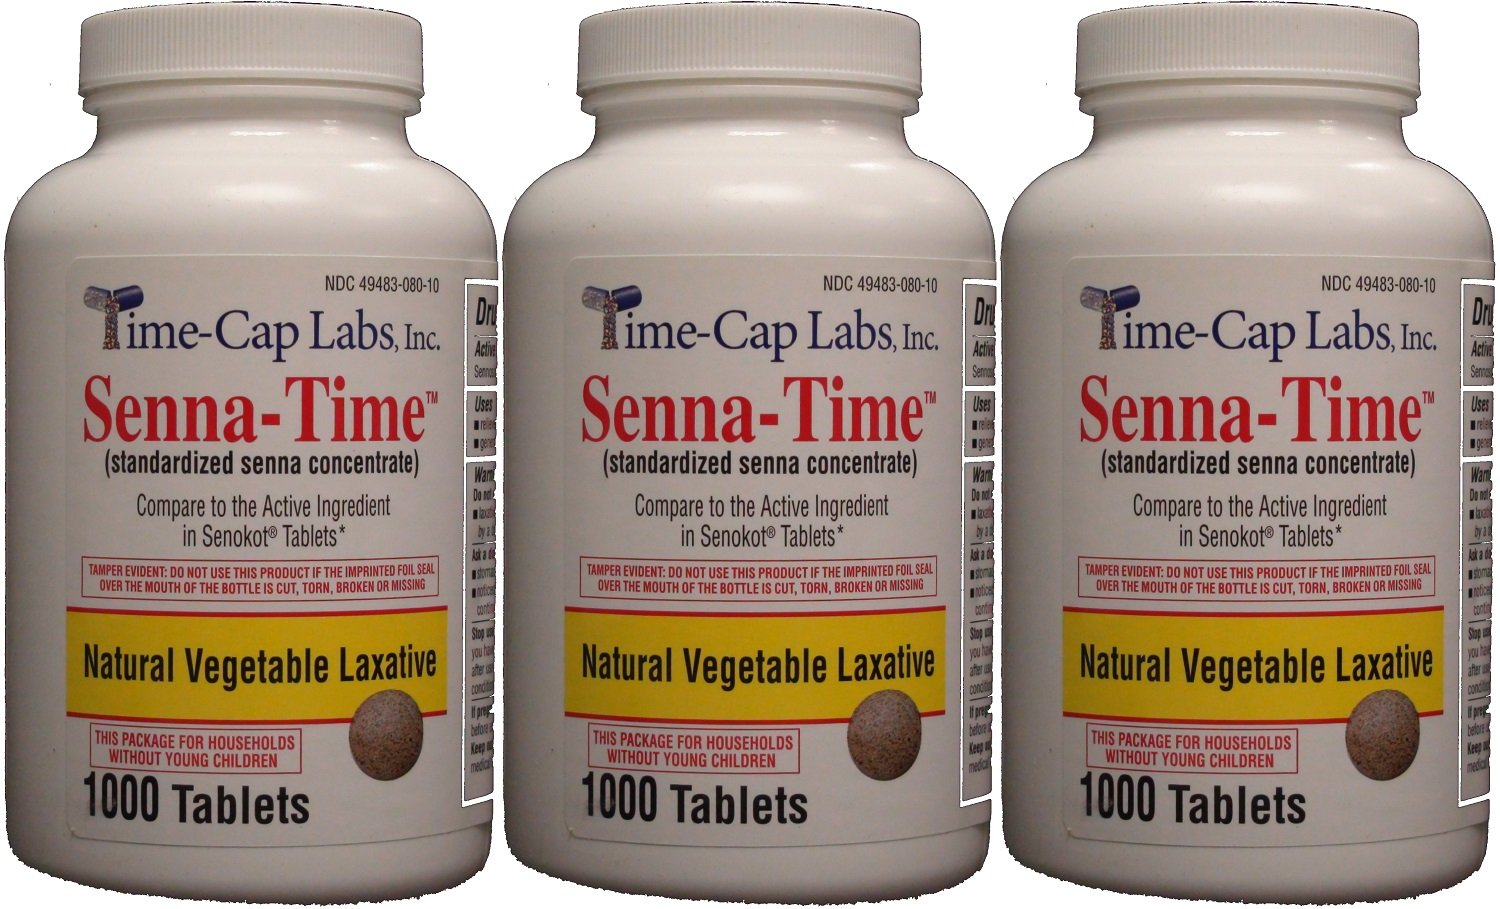 Senna-Time Generic for Senokot Natural Vegetable Laxative Senna 8.6 Mg 1000 Tablets per Bottle Pack Of 3 Bottles by Time Cap Labs